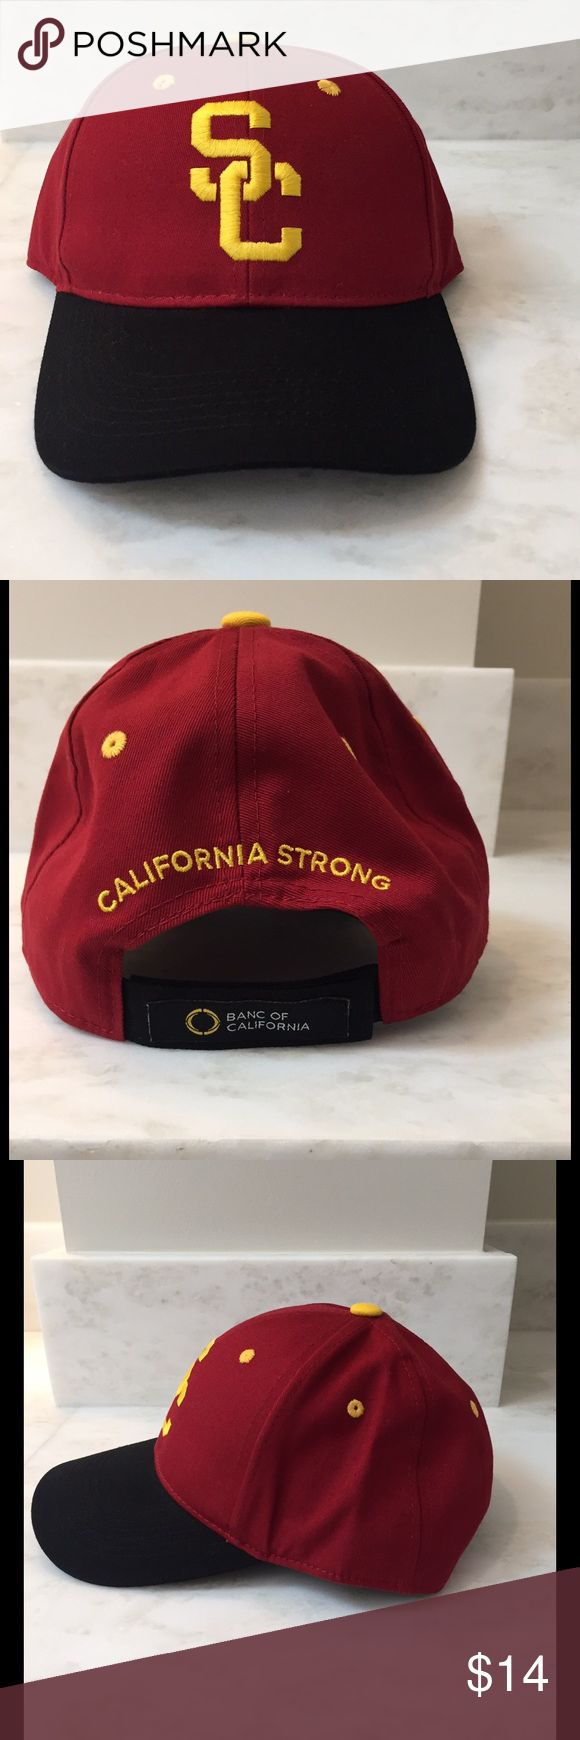 USC California Strong adjustable cap hat new University Of Southern California USC Trojans SC California Strong hat cap unisex adjustable Velcro strap.  Brand New Accessories Hats